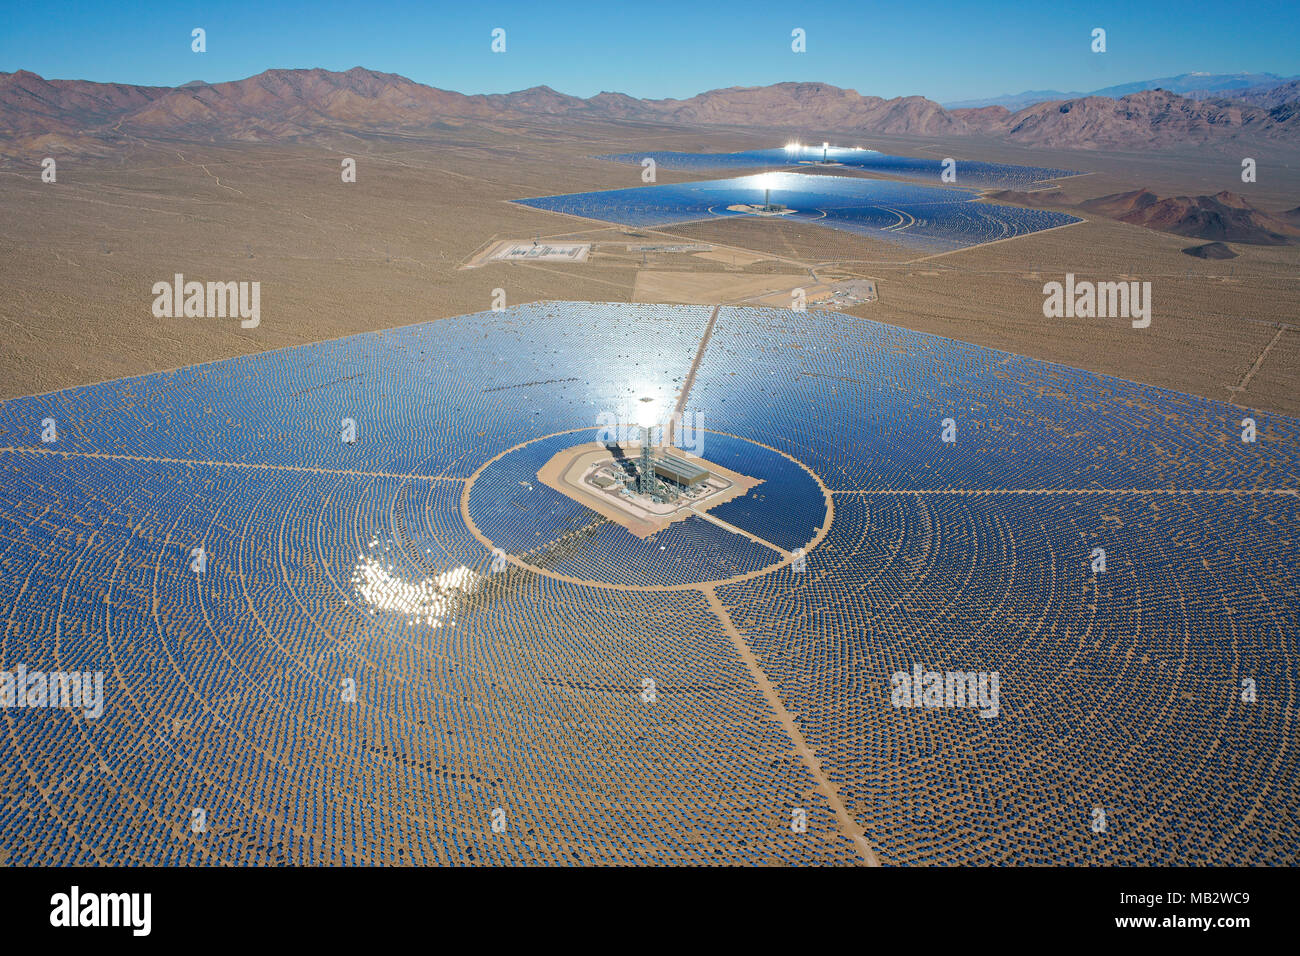 IVANPAH SOLAR ELECTRIC GENERATING SYSTEM (aerial view) (world's largest concentrated solar power plant as of 2018). Mojave Desert, California, USA. - Stock Image